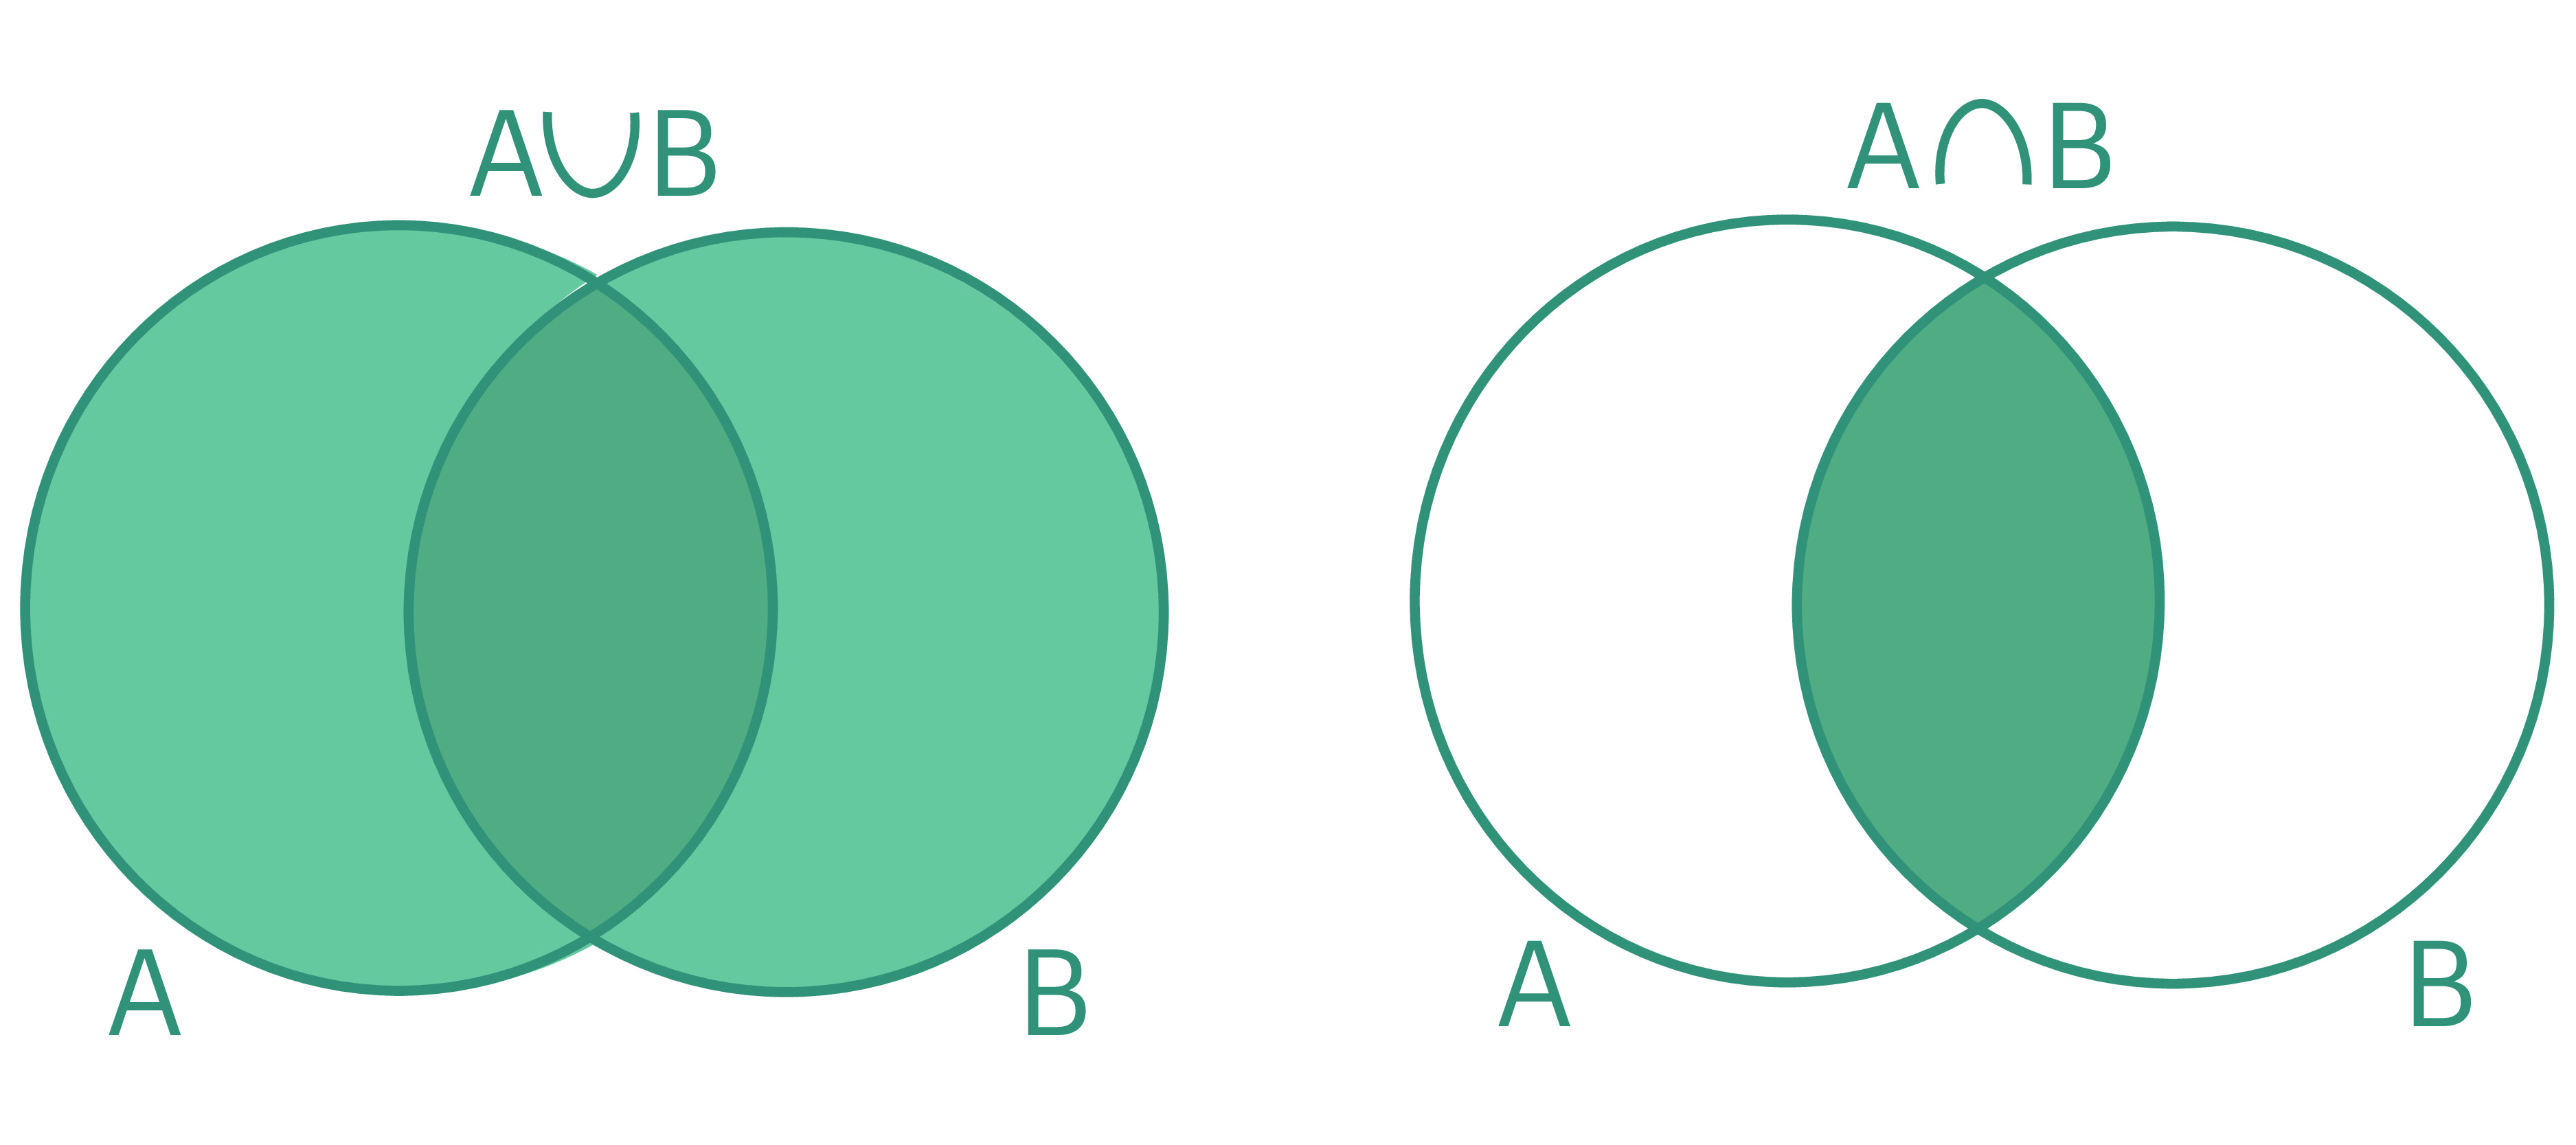 Two Venn diagrams. One shows A union B and the other shows A intersect B.